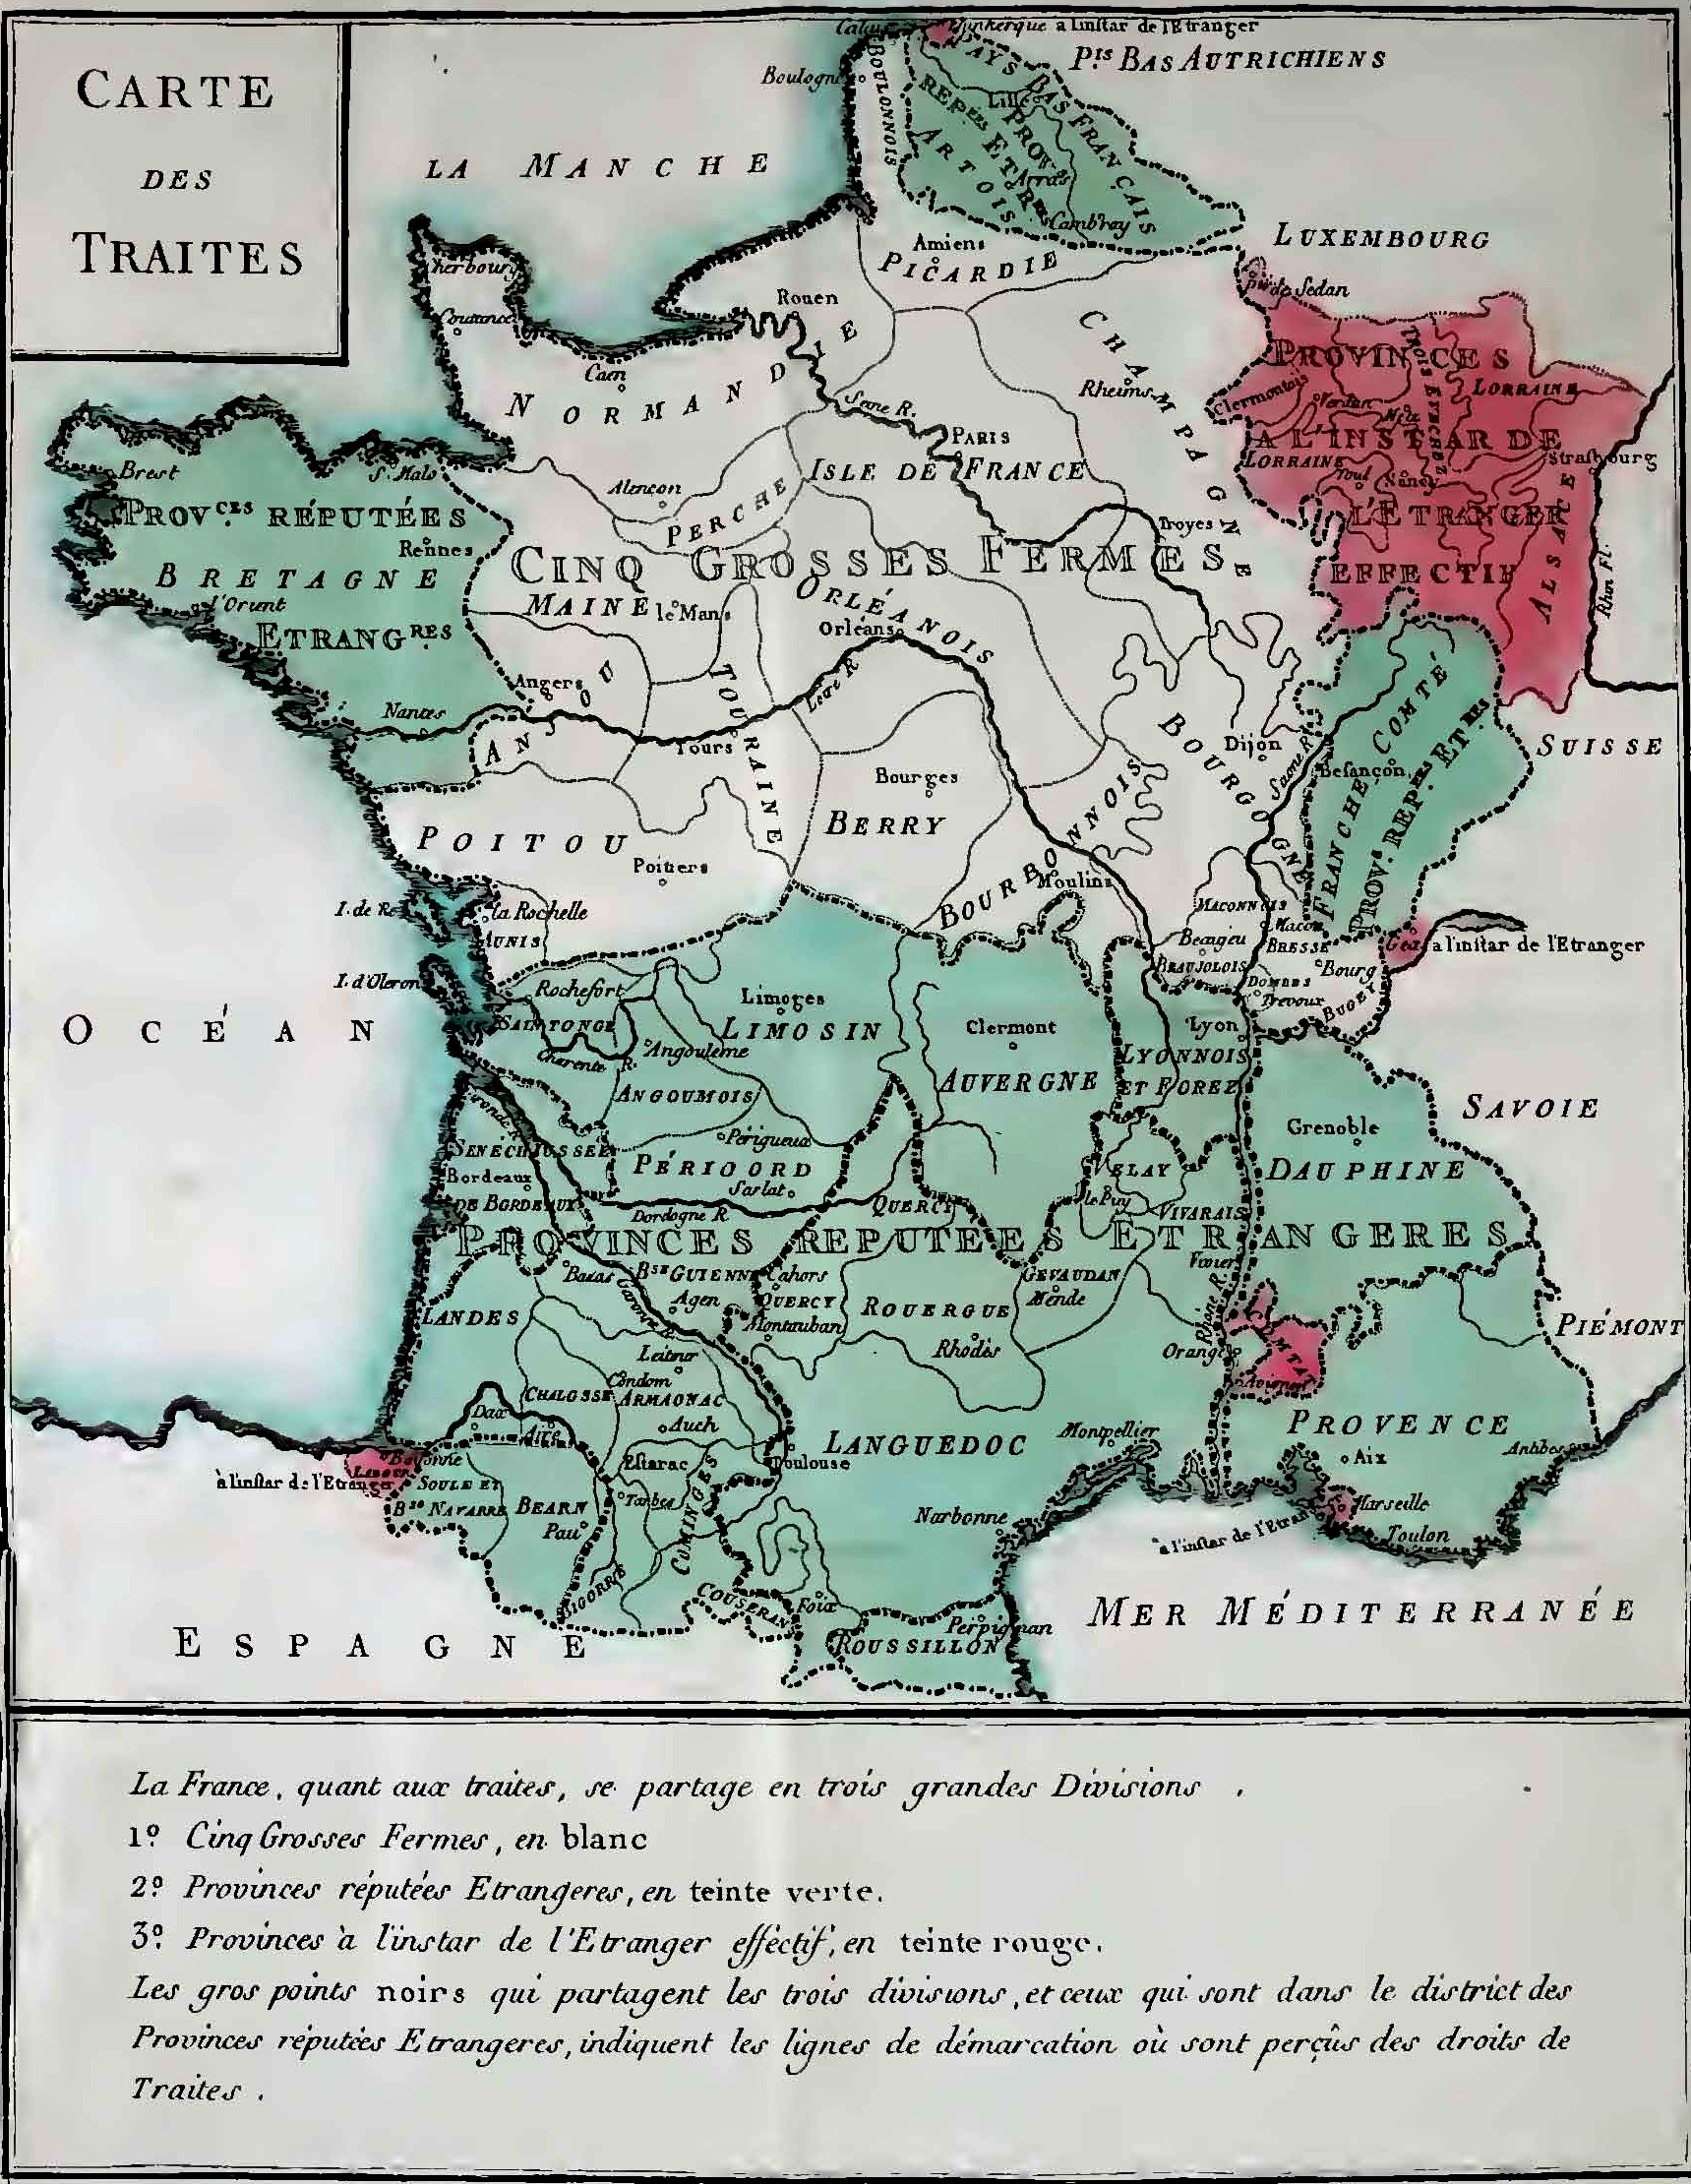 Trade map of France in 1781